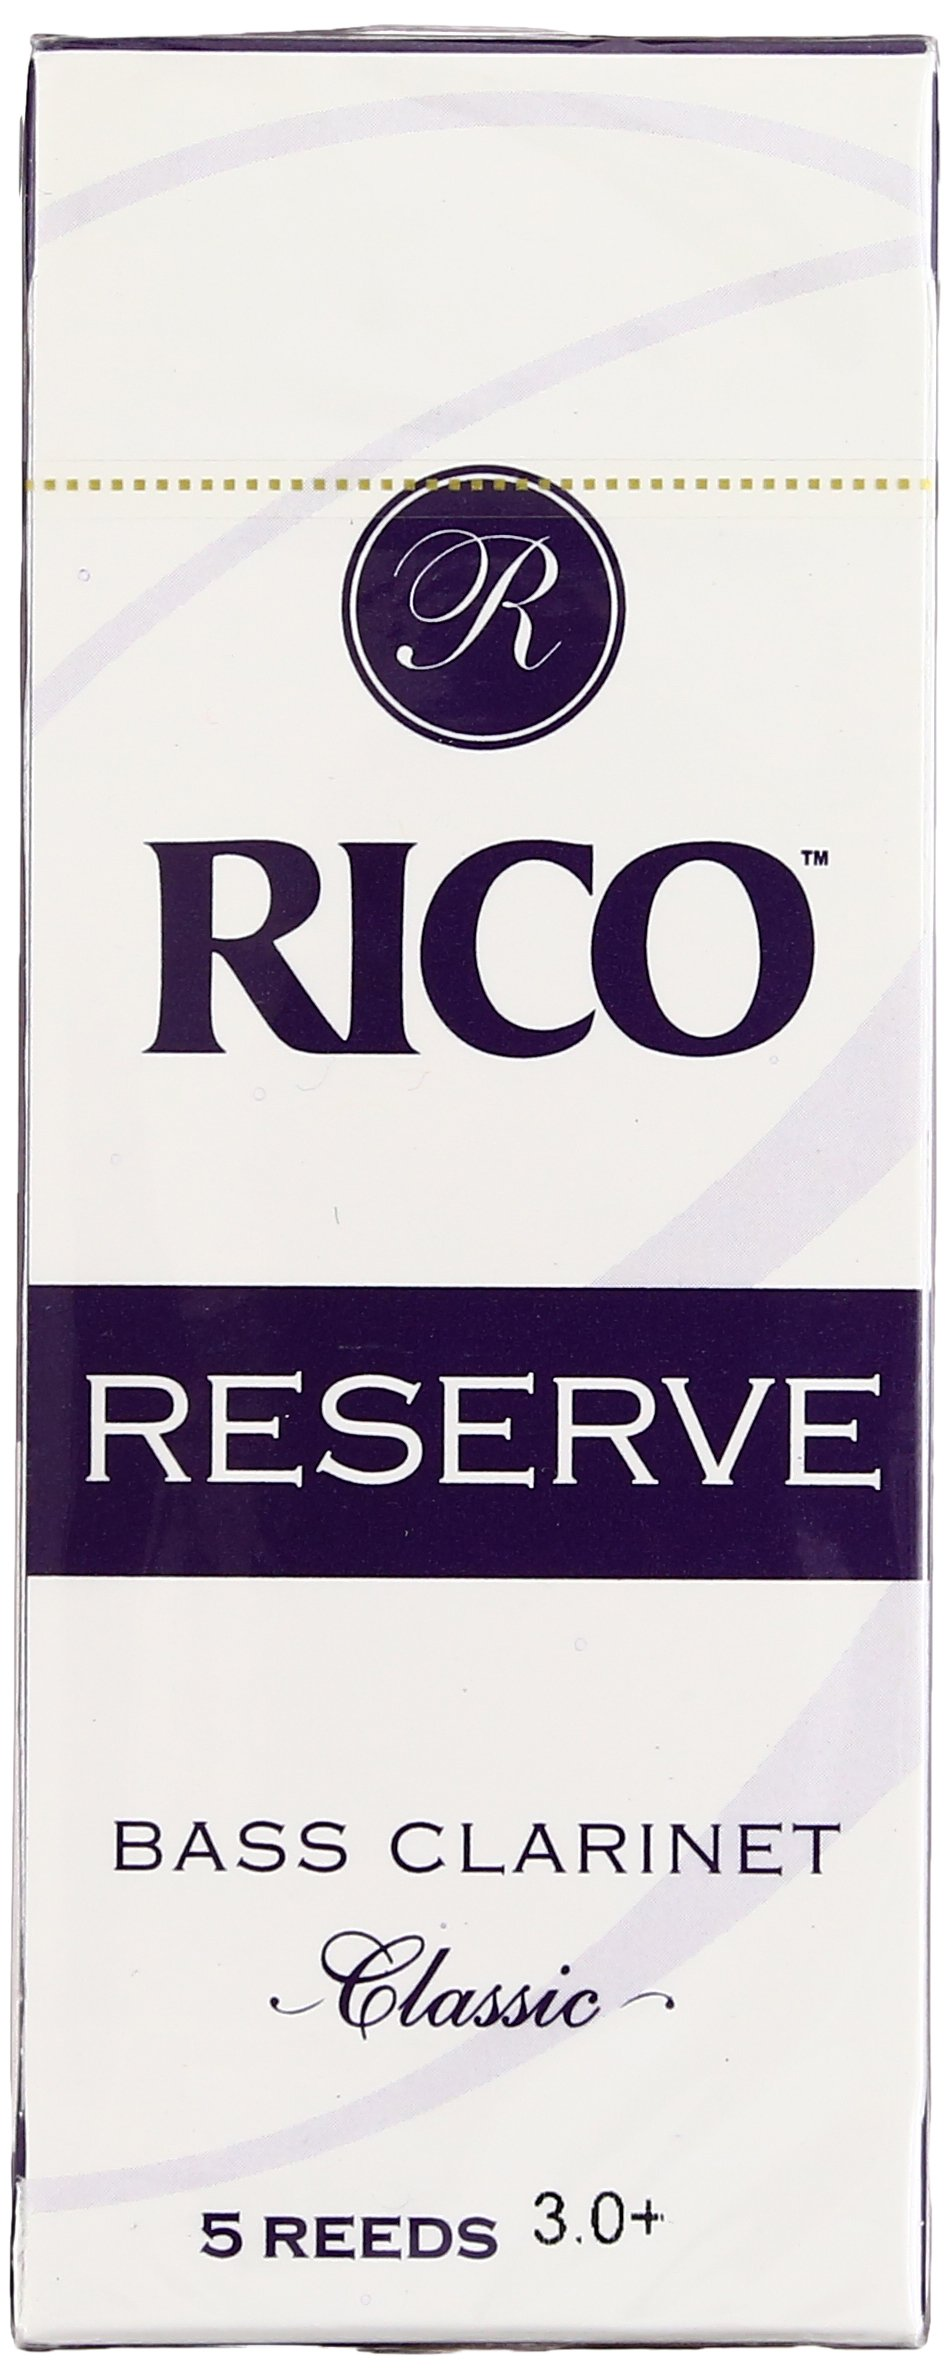 Rico Reserve Classic Bass Clarinet Reeds, Strength 3.0+, 5-pack